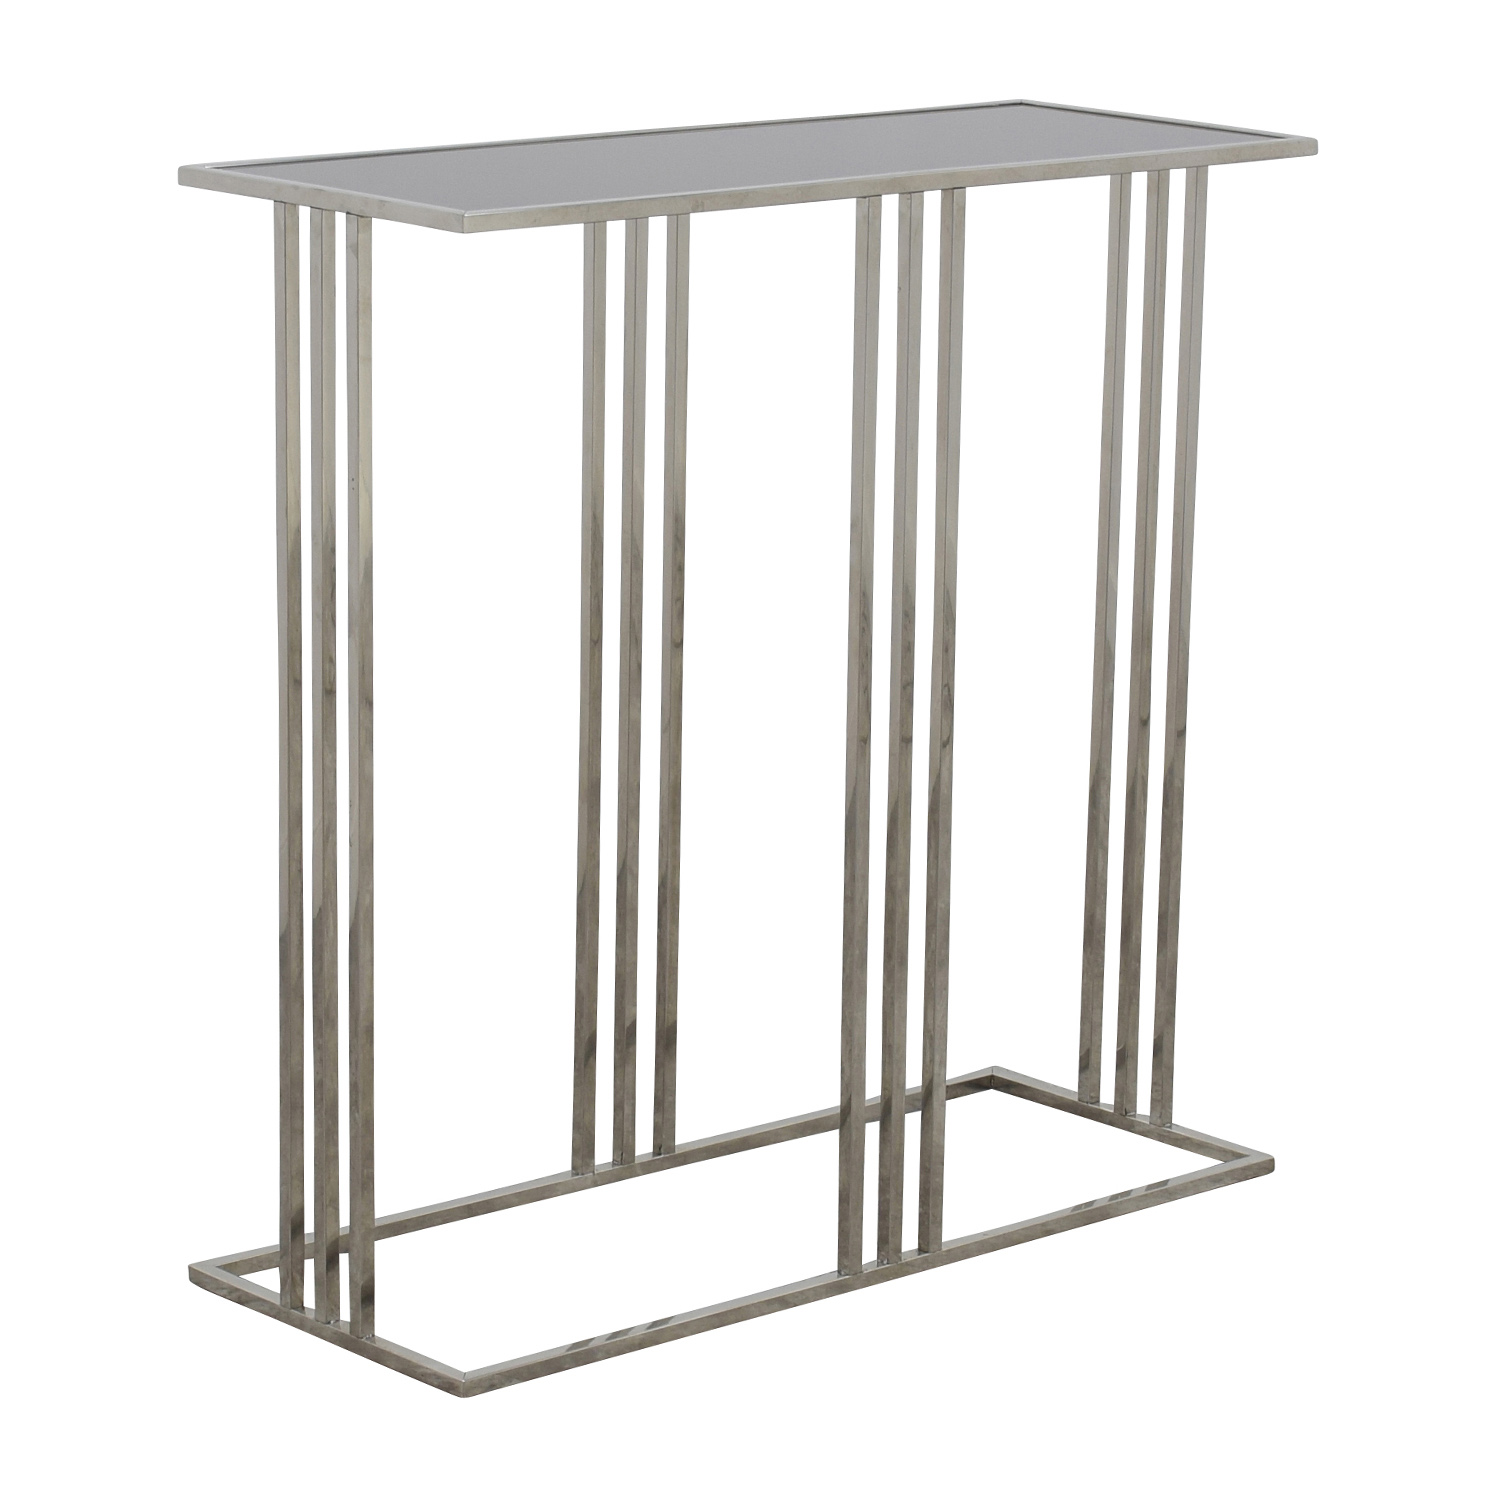 marshalls homegoods marshalls homegoods black and silver console entryway table dimensions